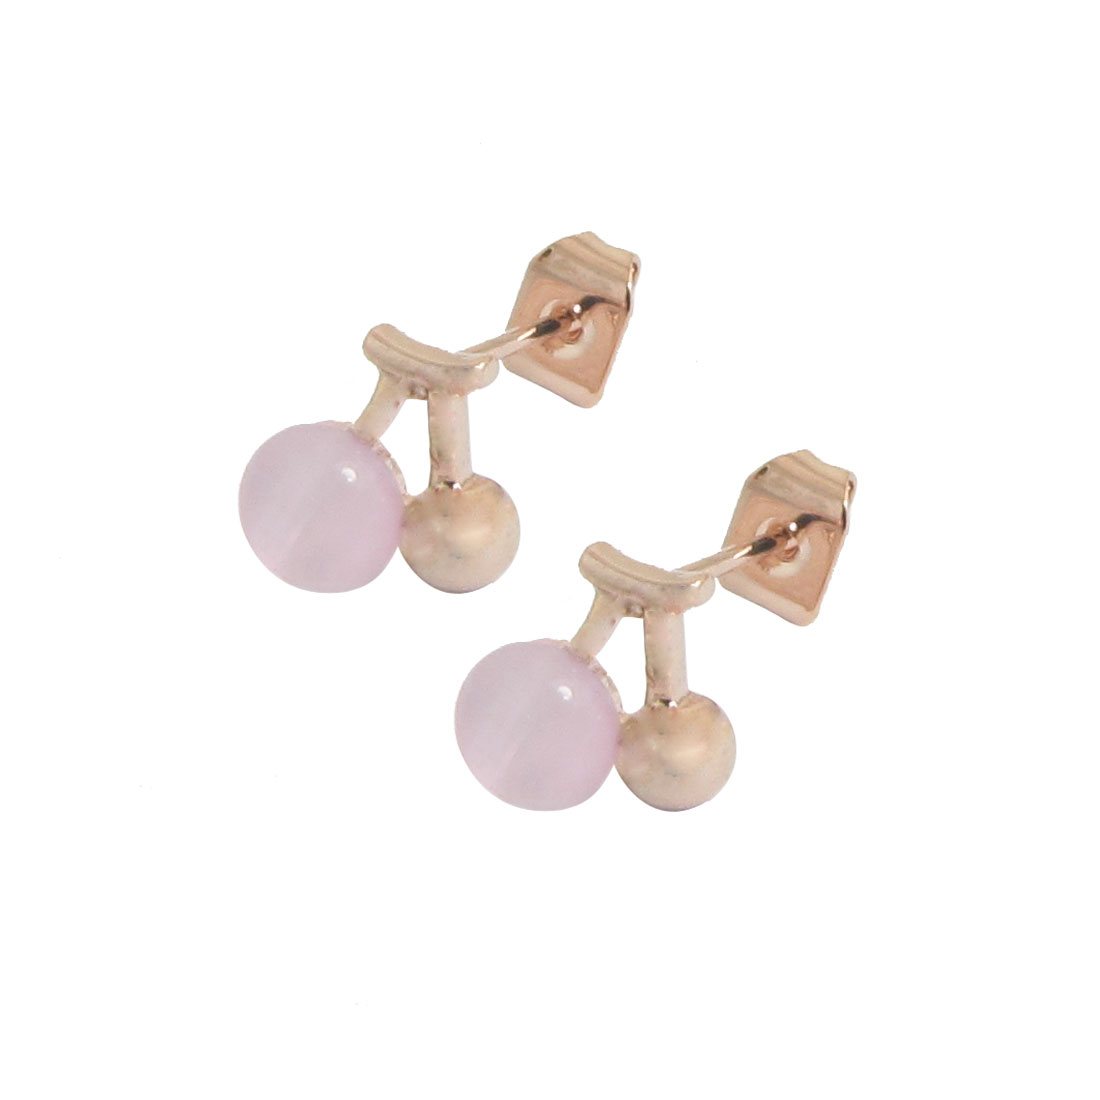 2 Pcs Gold Tone Pink Cherry Ear Stud Earrings Jewelry for Woman